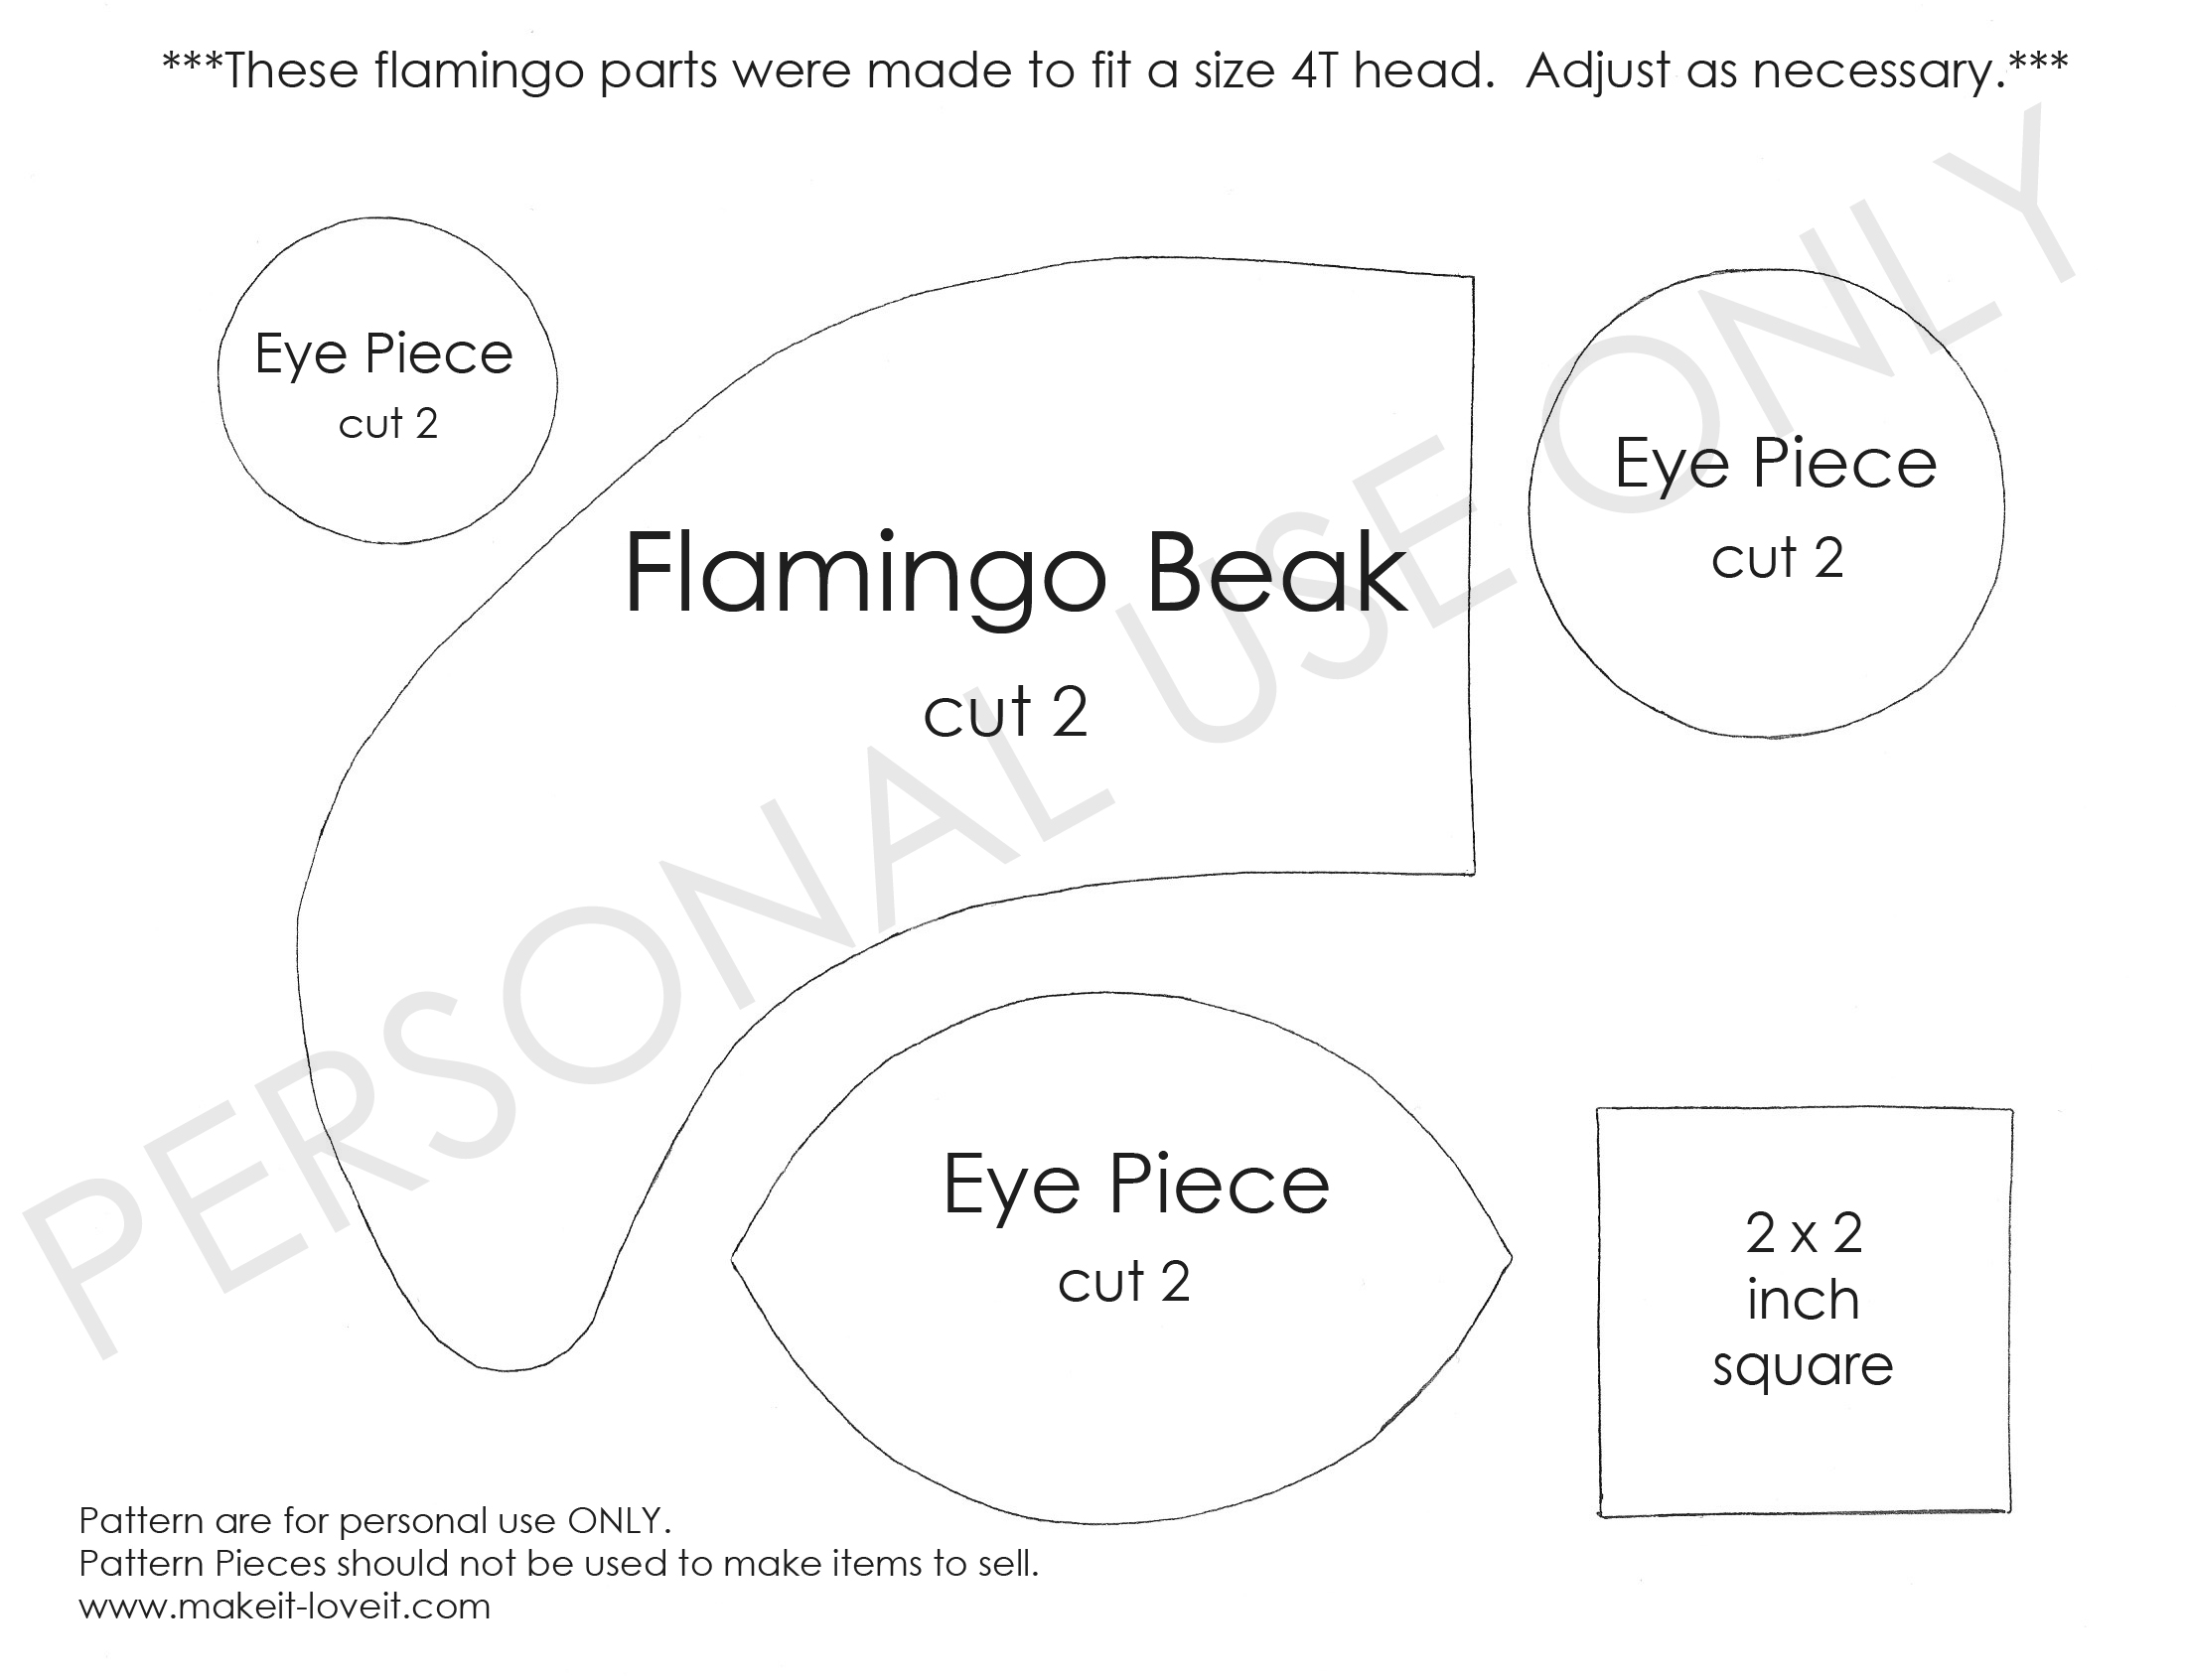 Flamingo beak template 28 images attempting aloha glamorous flamingo beak template free pattern pieces make it and it pronofoot35fo Images